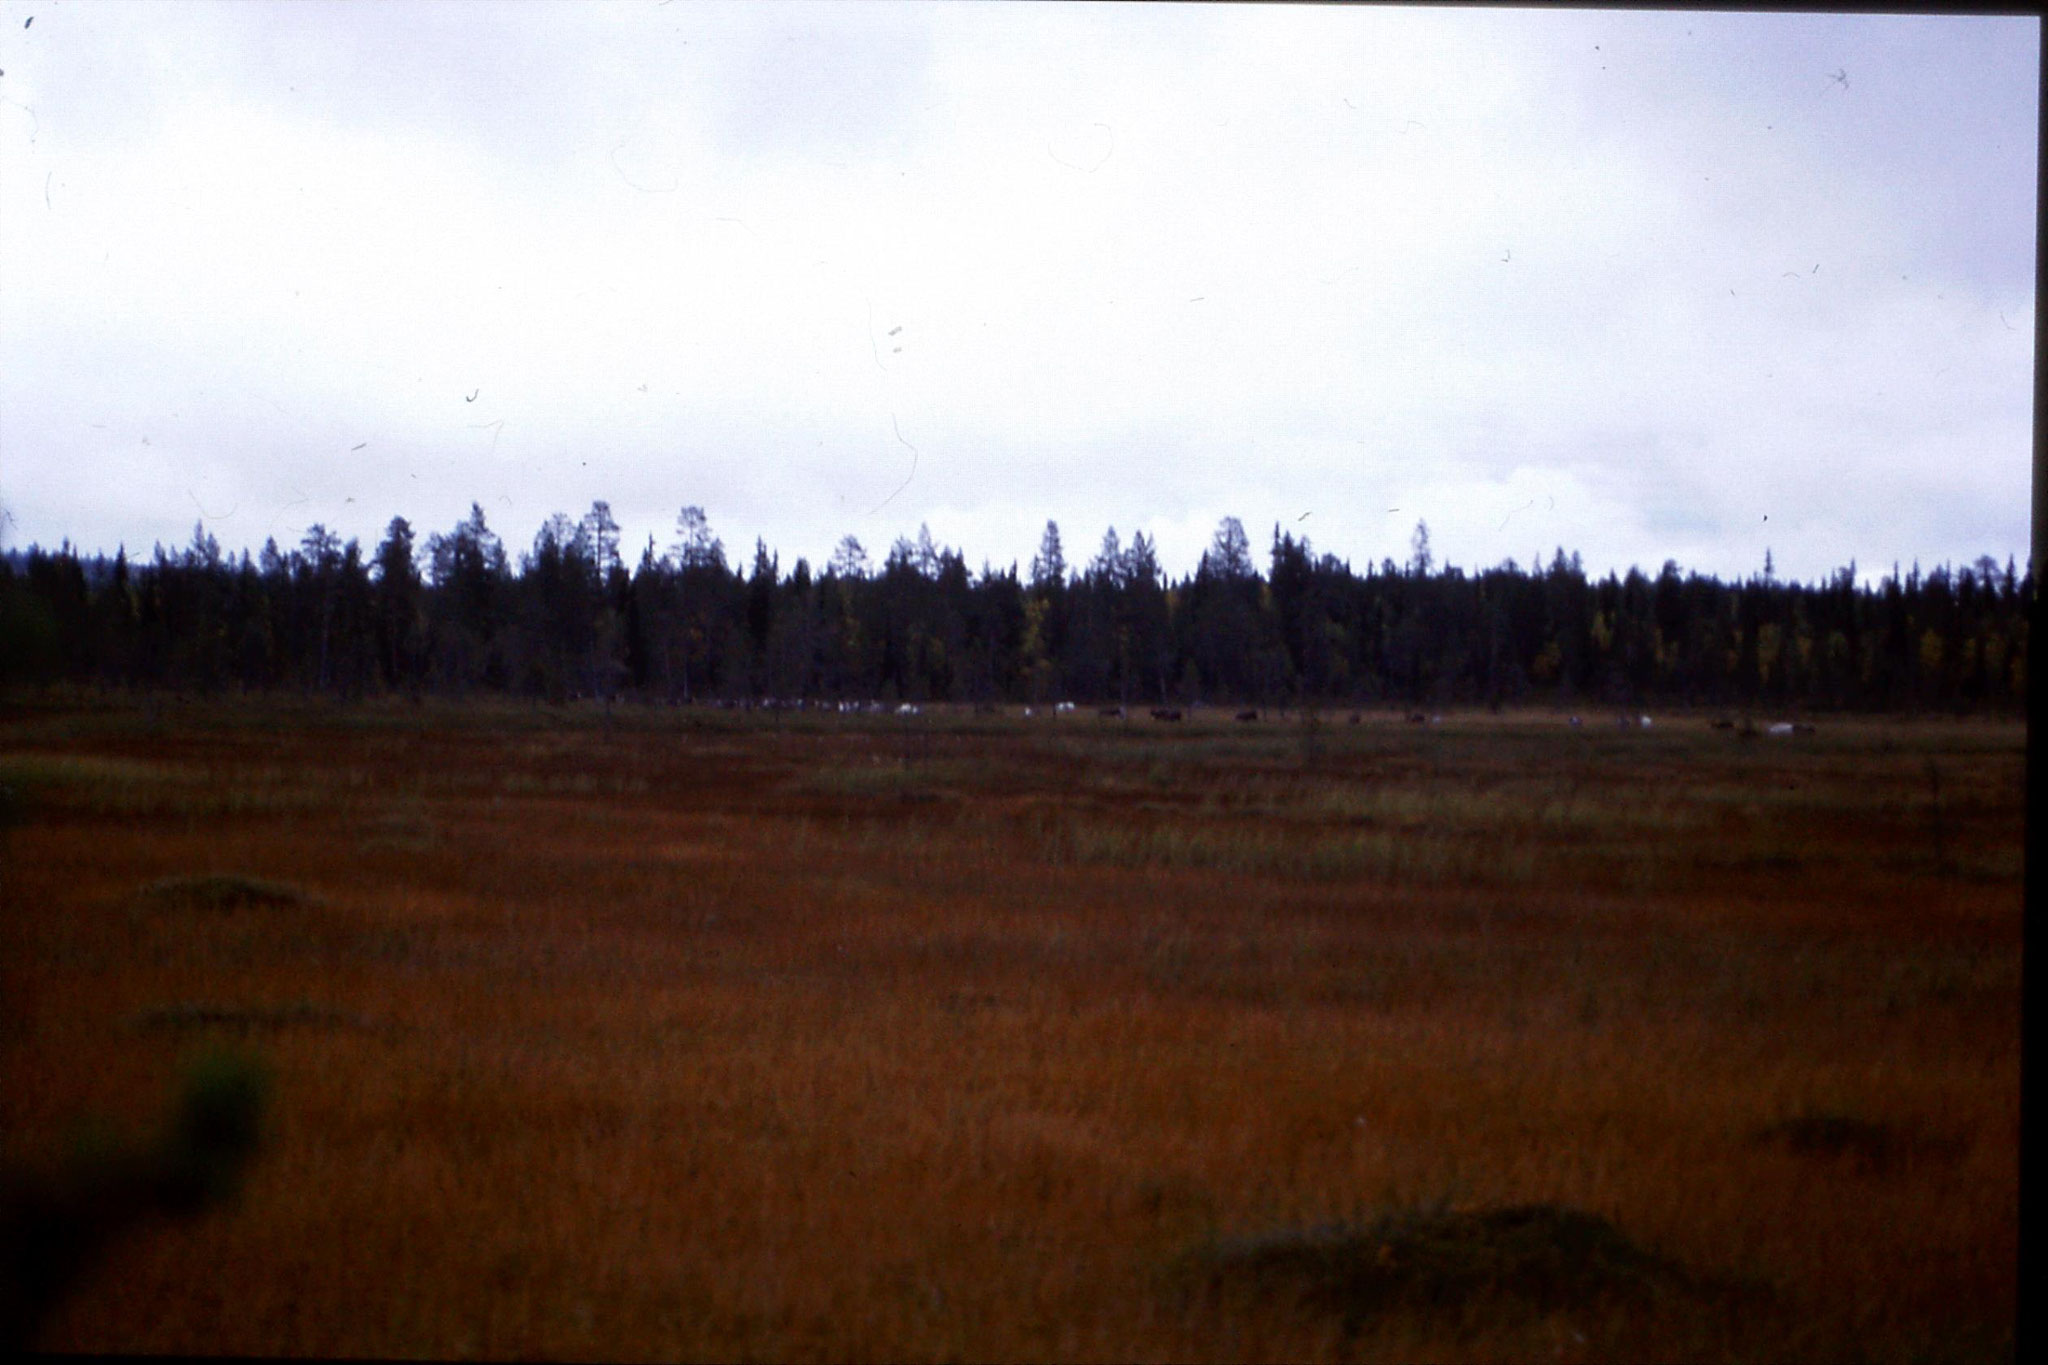 12/9/1988: 6: reindeer on road south from Jokkmokk